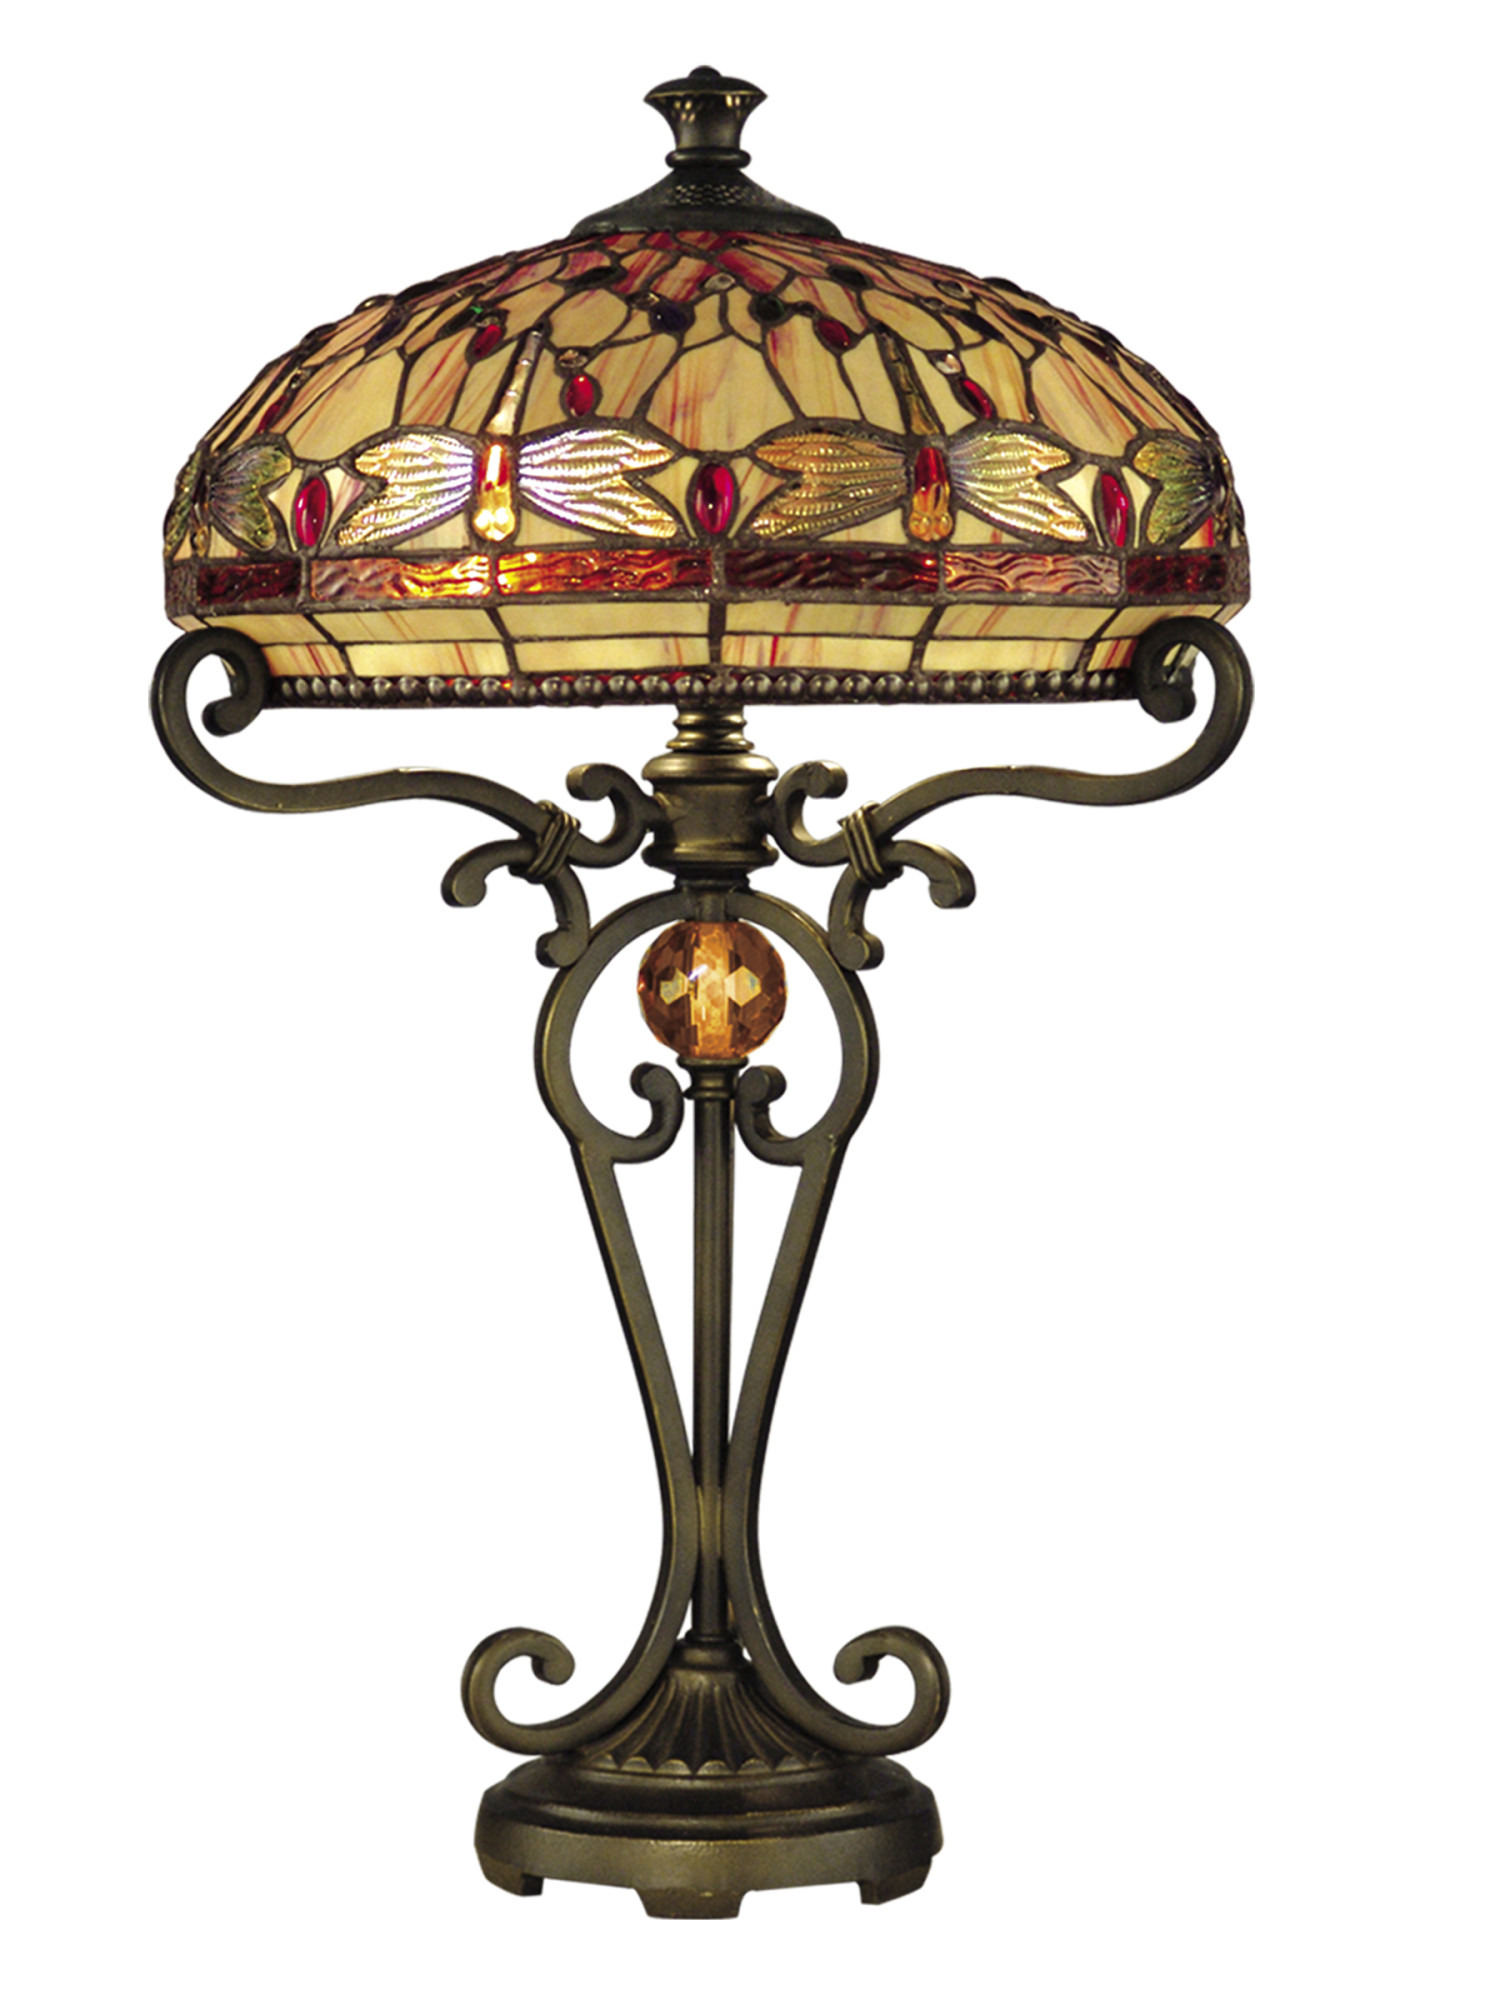 Dale Tiffany Lamps History Unique Details About Dale Tiffany Tt Victorian 2 Light Dragonfly Table Lamp Gold